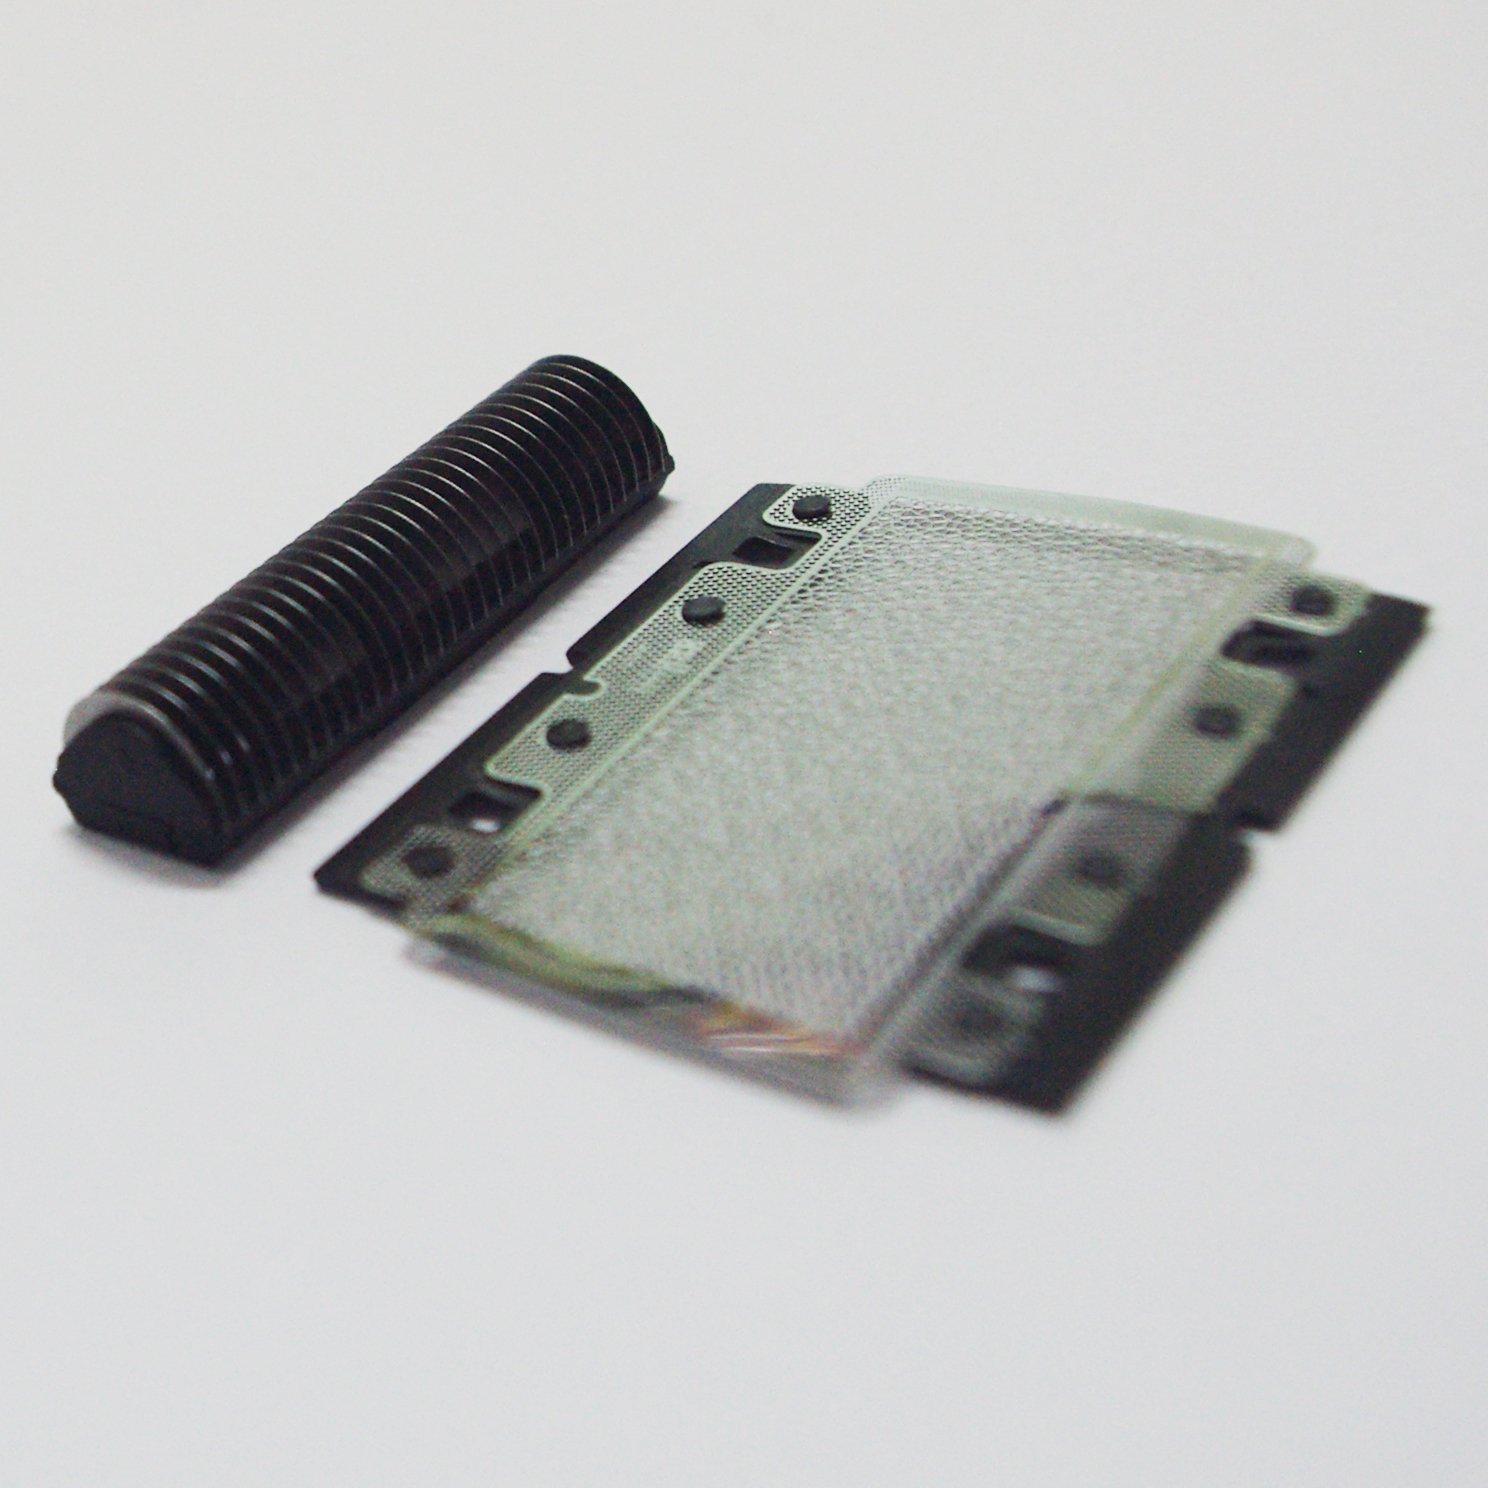 Ronsit New Shaver/Razor Replacement Foil&Cutters for 3305, 3310, 3315, 3600, 3610, 3612, 3614, 3615, 3731, 3732, 3733, 3734, 3770, 3773, 3772, 3774, 3775, 5628, 5629, 5632, 5634, 5635